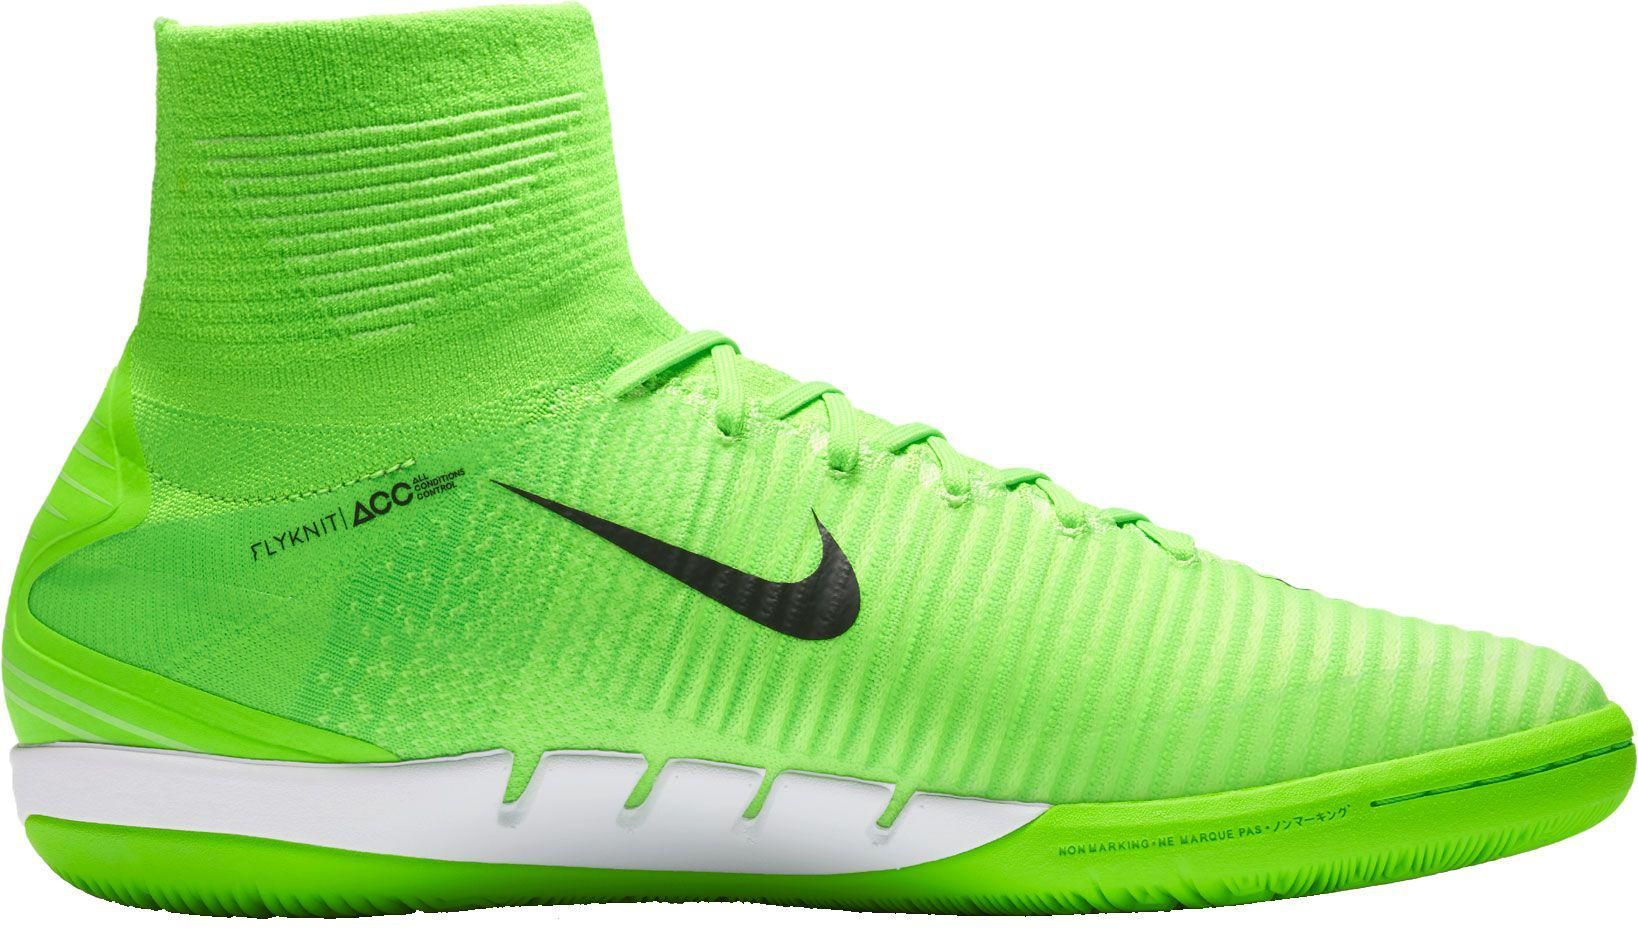 307f064ef69 nike-GreenBlack-Mercurial-X-Proximo-Ii-Indoor-Soccer-Shoes.jpeg